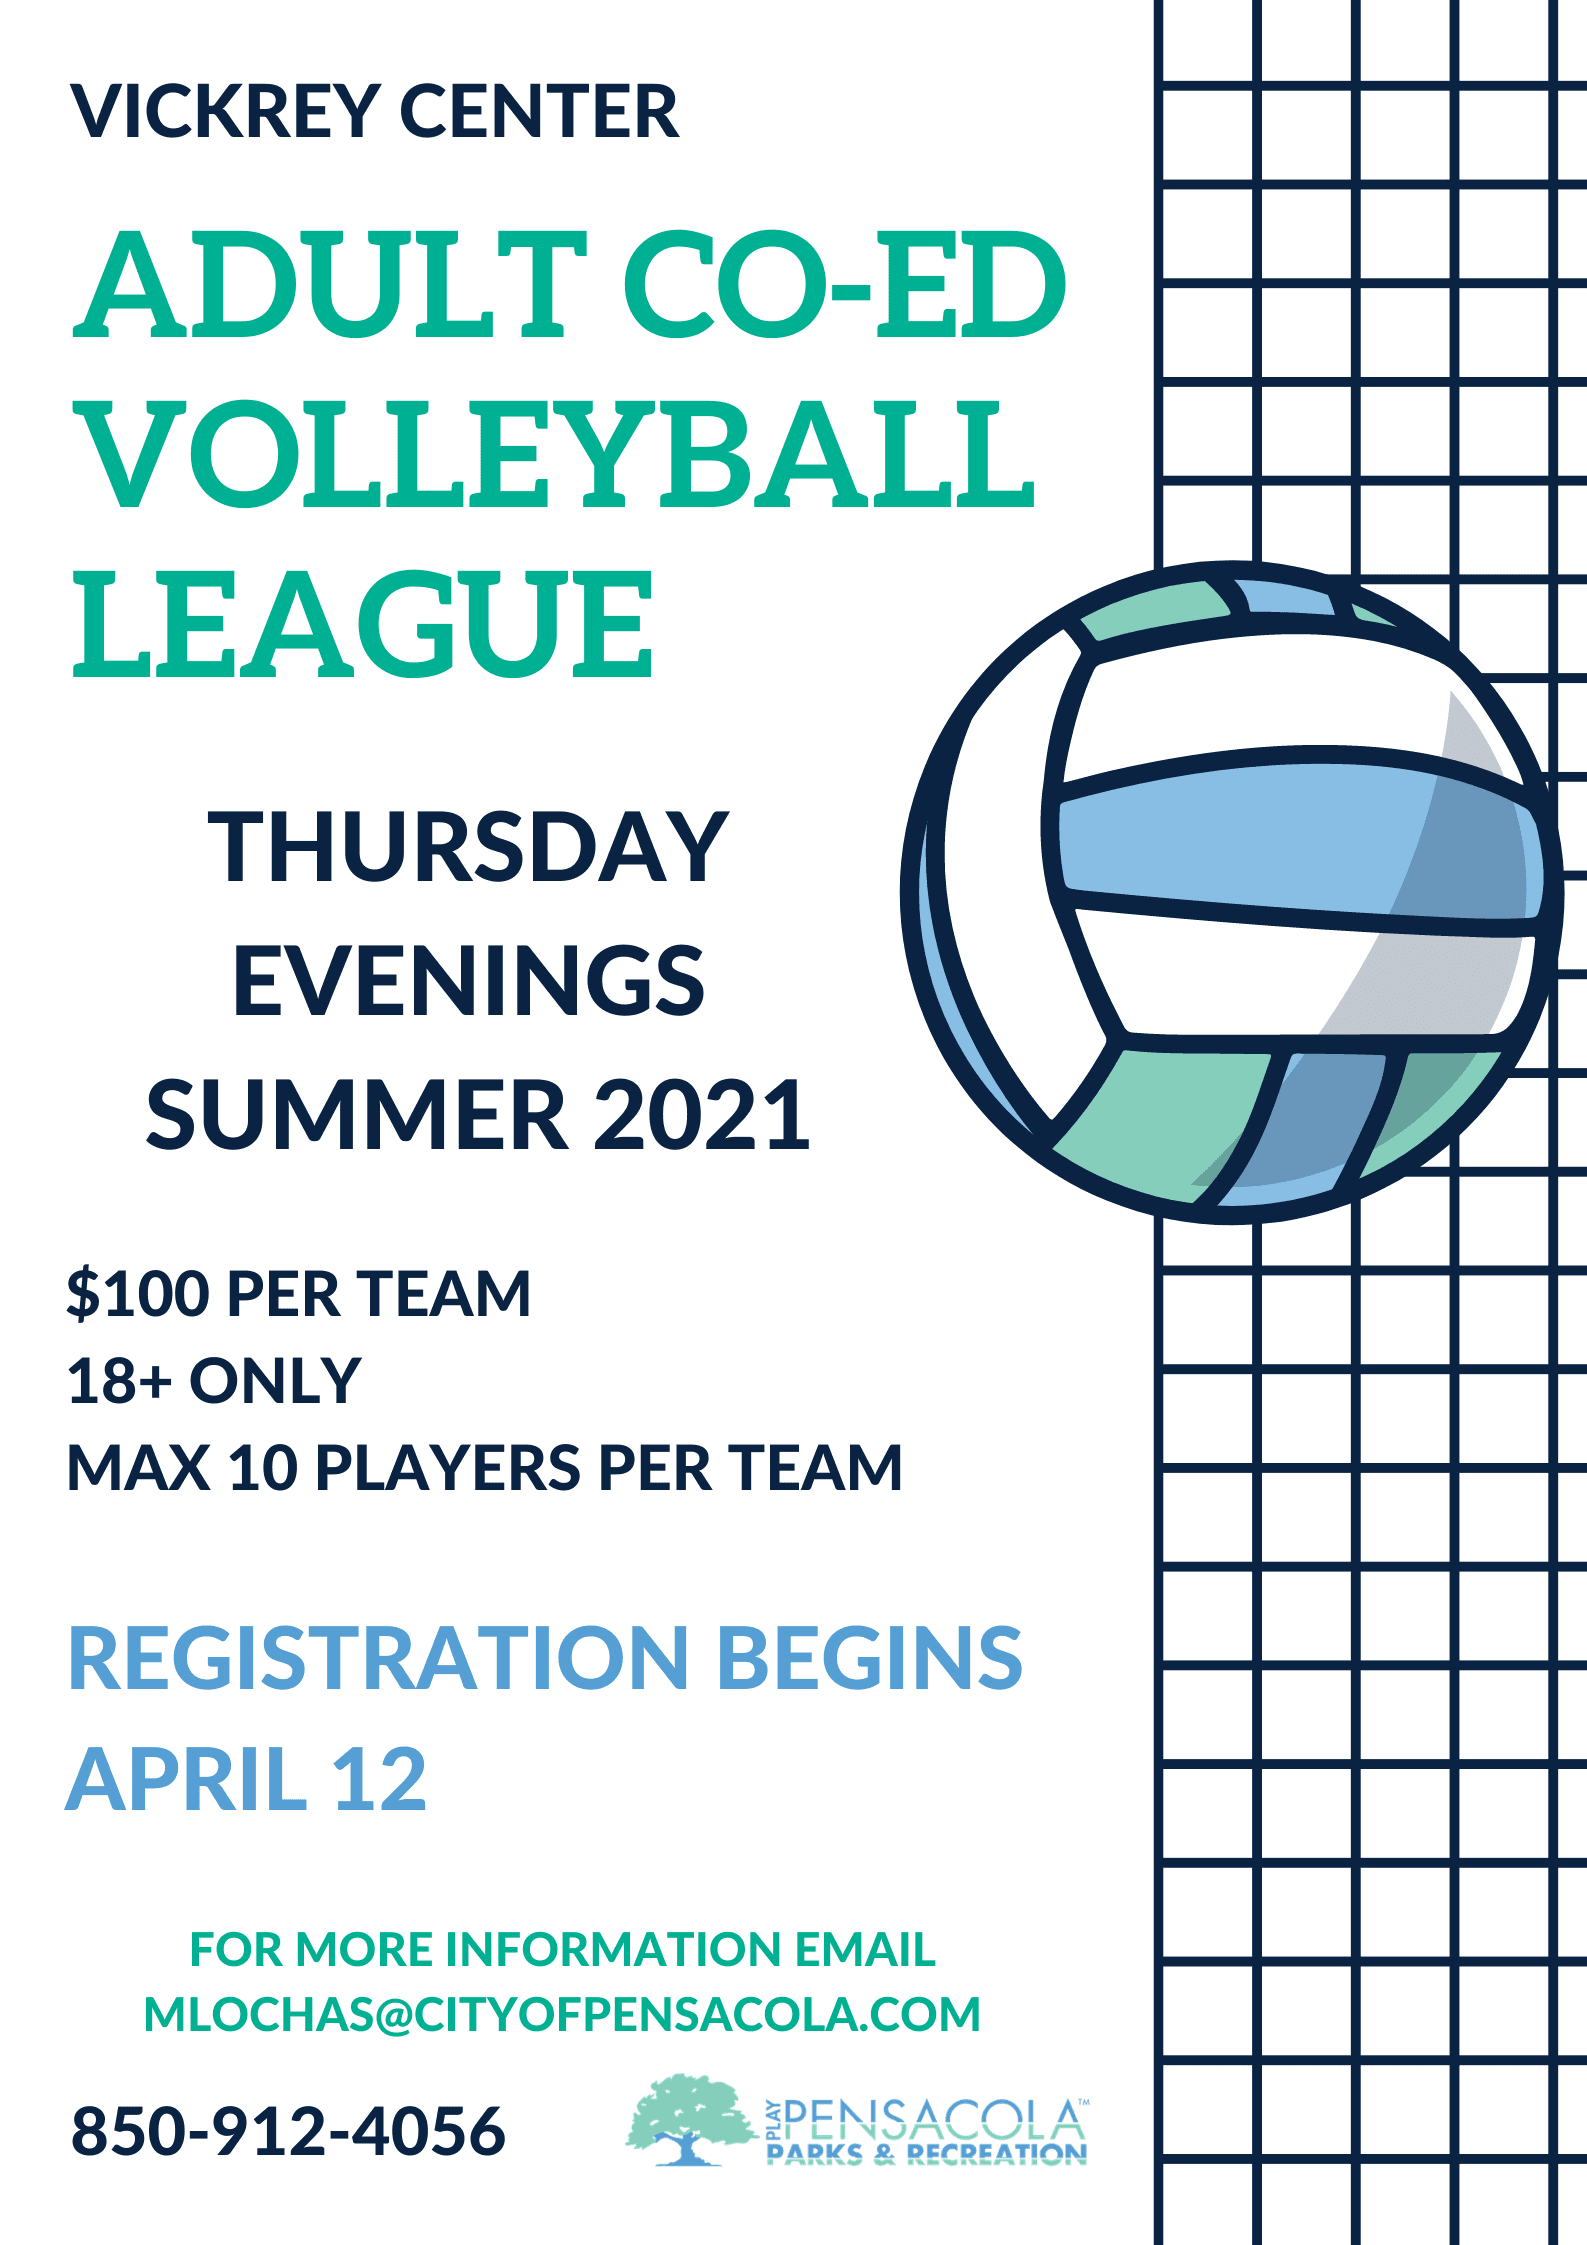 Vickrey Adult Co-Ed Volleyball Flyer